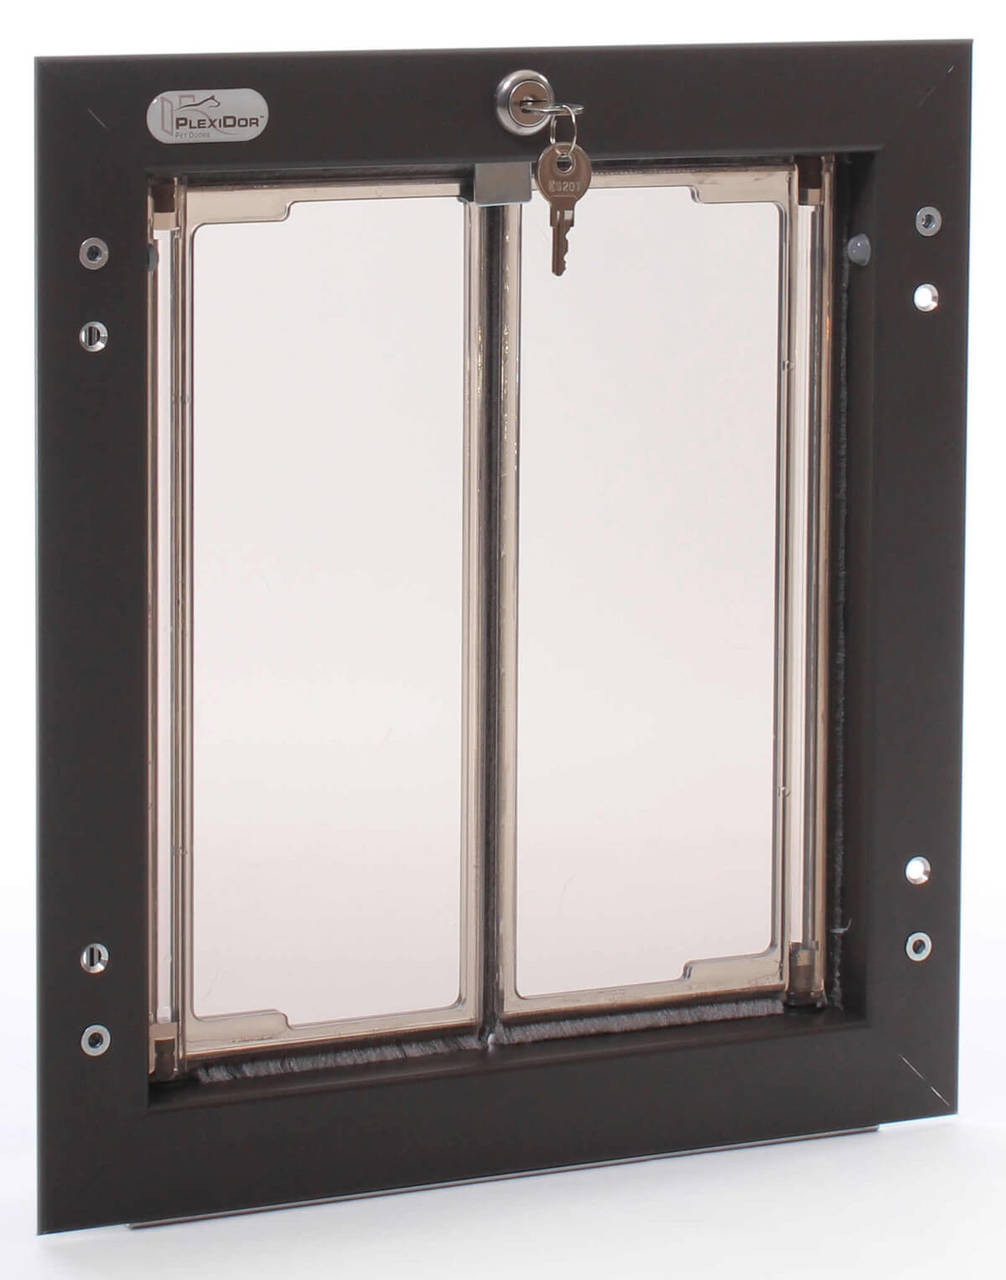 Plexidor pet doors come in a medium size that fits border collies australian shepherds shelties dachhunds and other dogs up to about 40 pounds